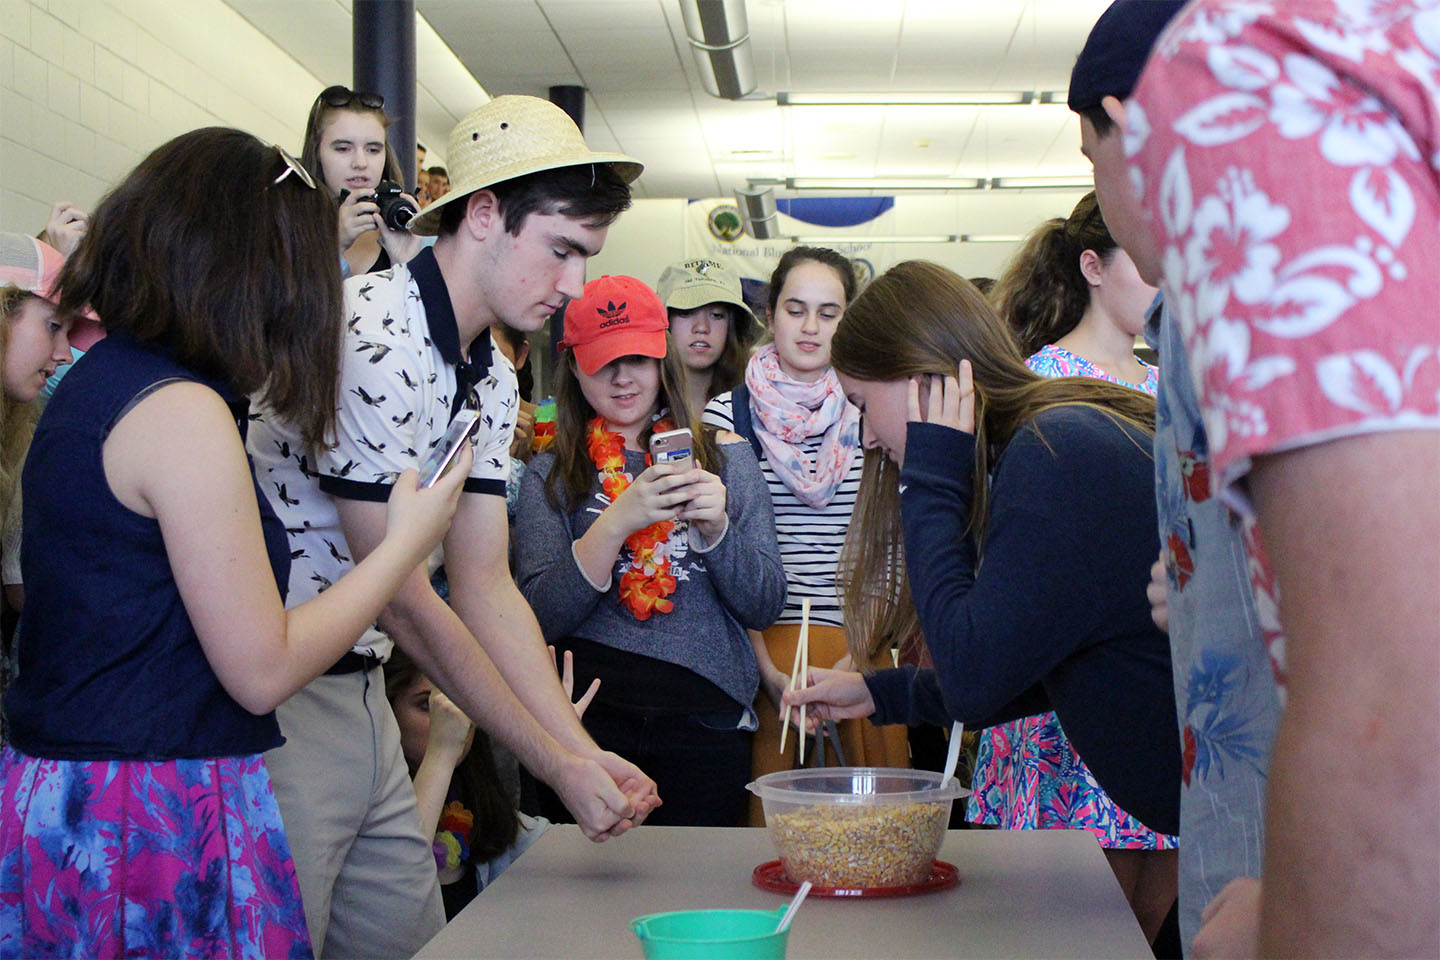 Teams of four competed in a series of events during the Minute to Win It lunchtime competition.